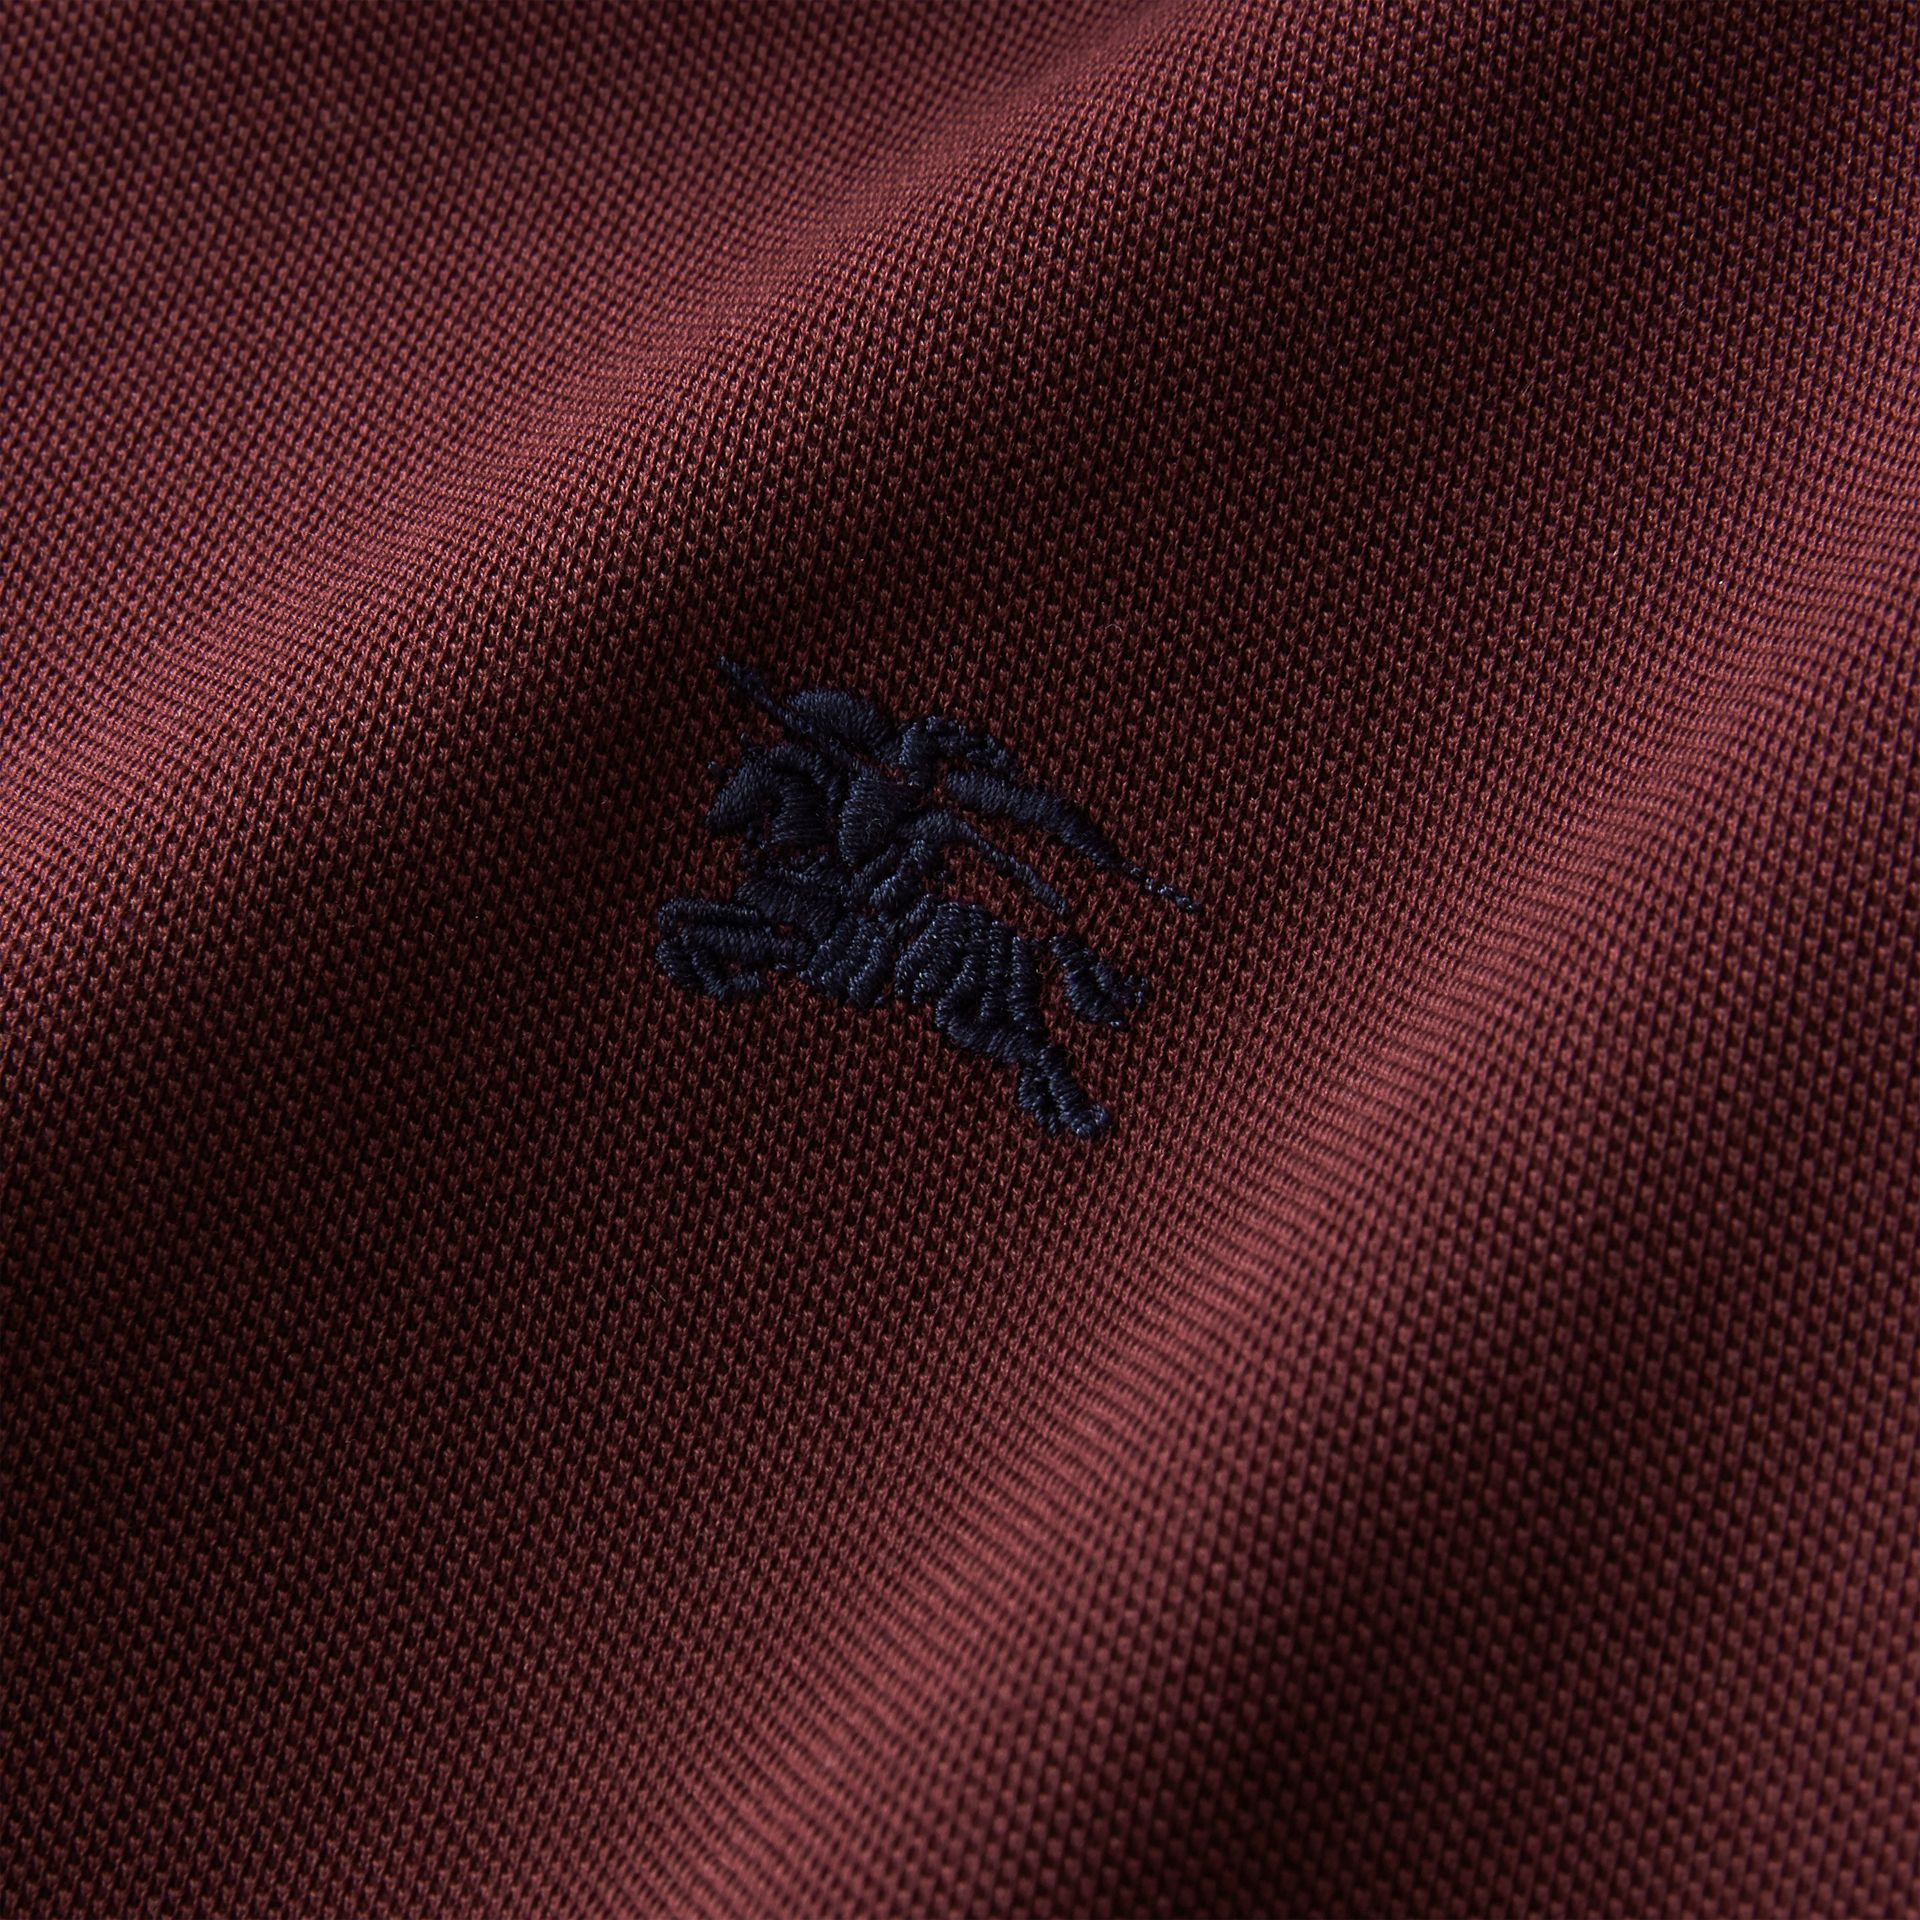 Polo bicolore en piqué de coton avec patte à motif check (Bordeaux Intense) - Homme | Burberry - photo de la galerie 2